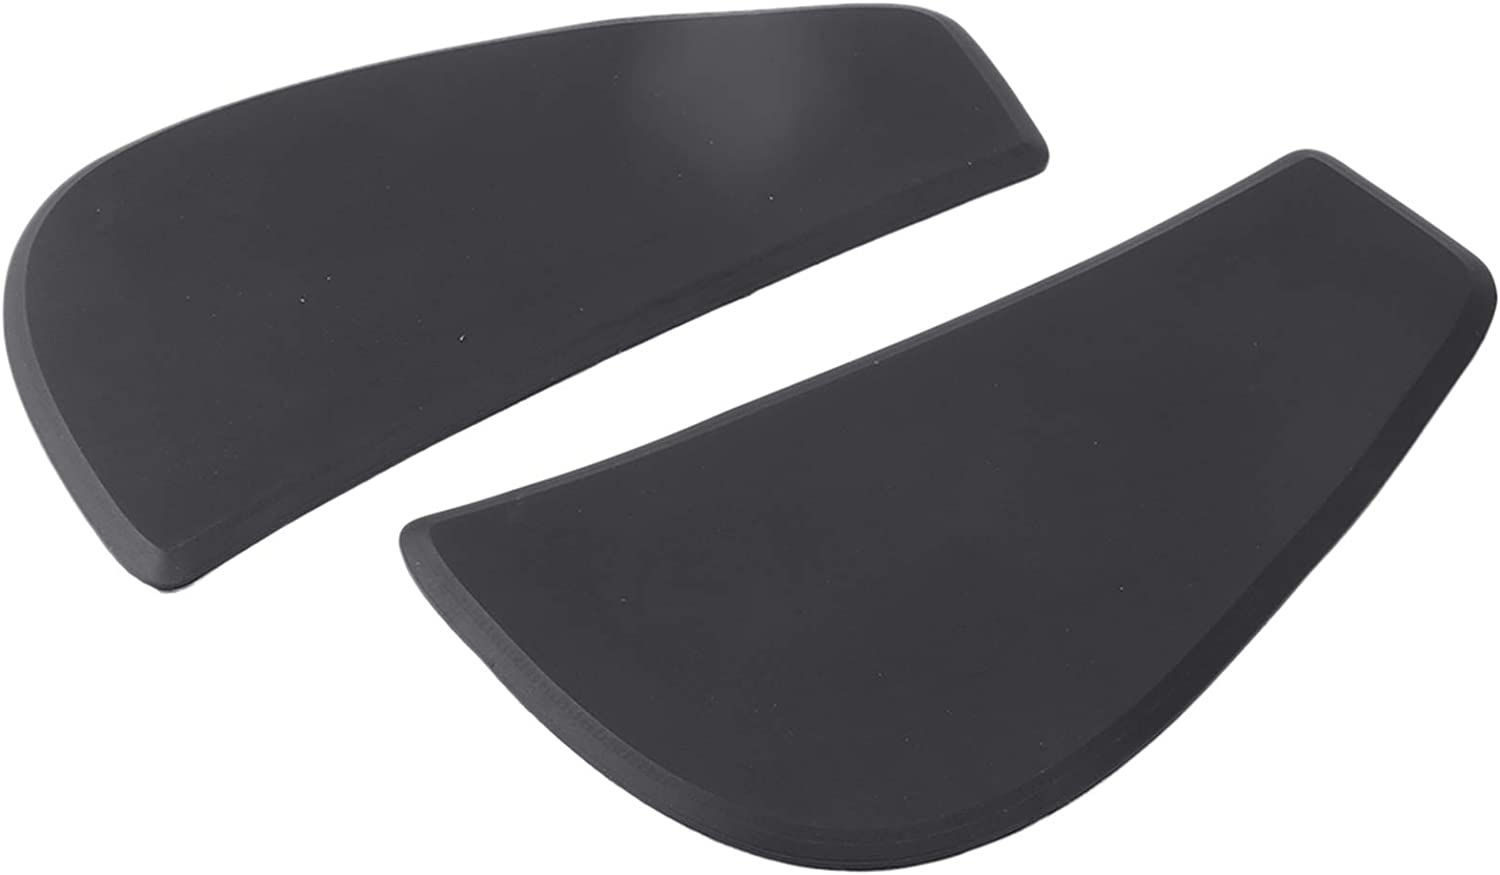 Moligh doll Motorcycle Fuel Tank Pad Protective Stickers Decals for R1200RT LC 2014 R1250RT R 1250RT